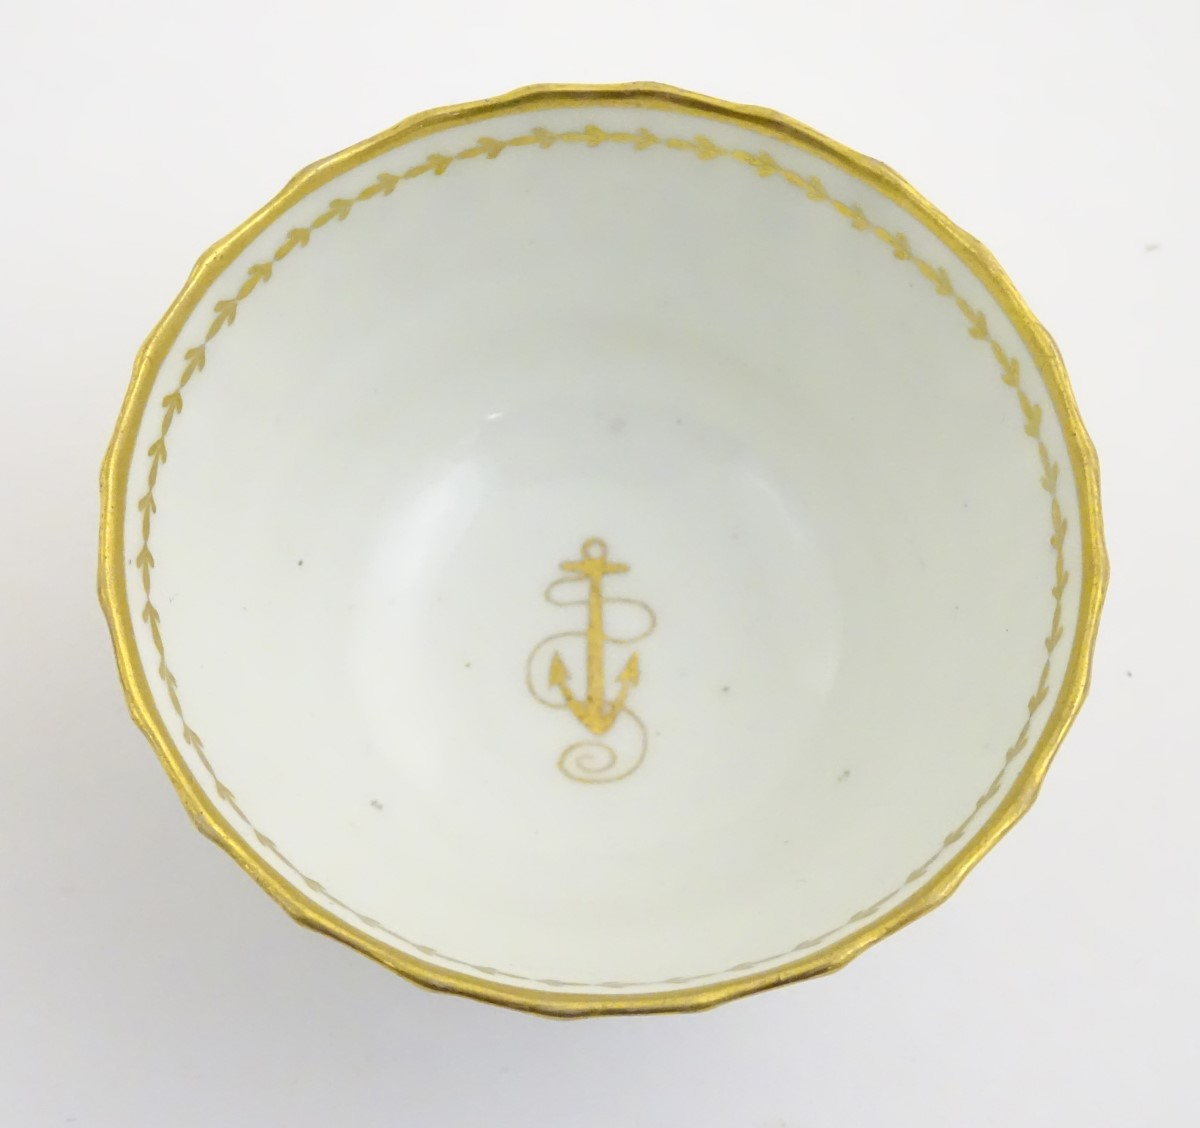 Lot 56 - A 19thC white porcelain tea bowl with ribbed sides and gilt decoration of stylised foliage and